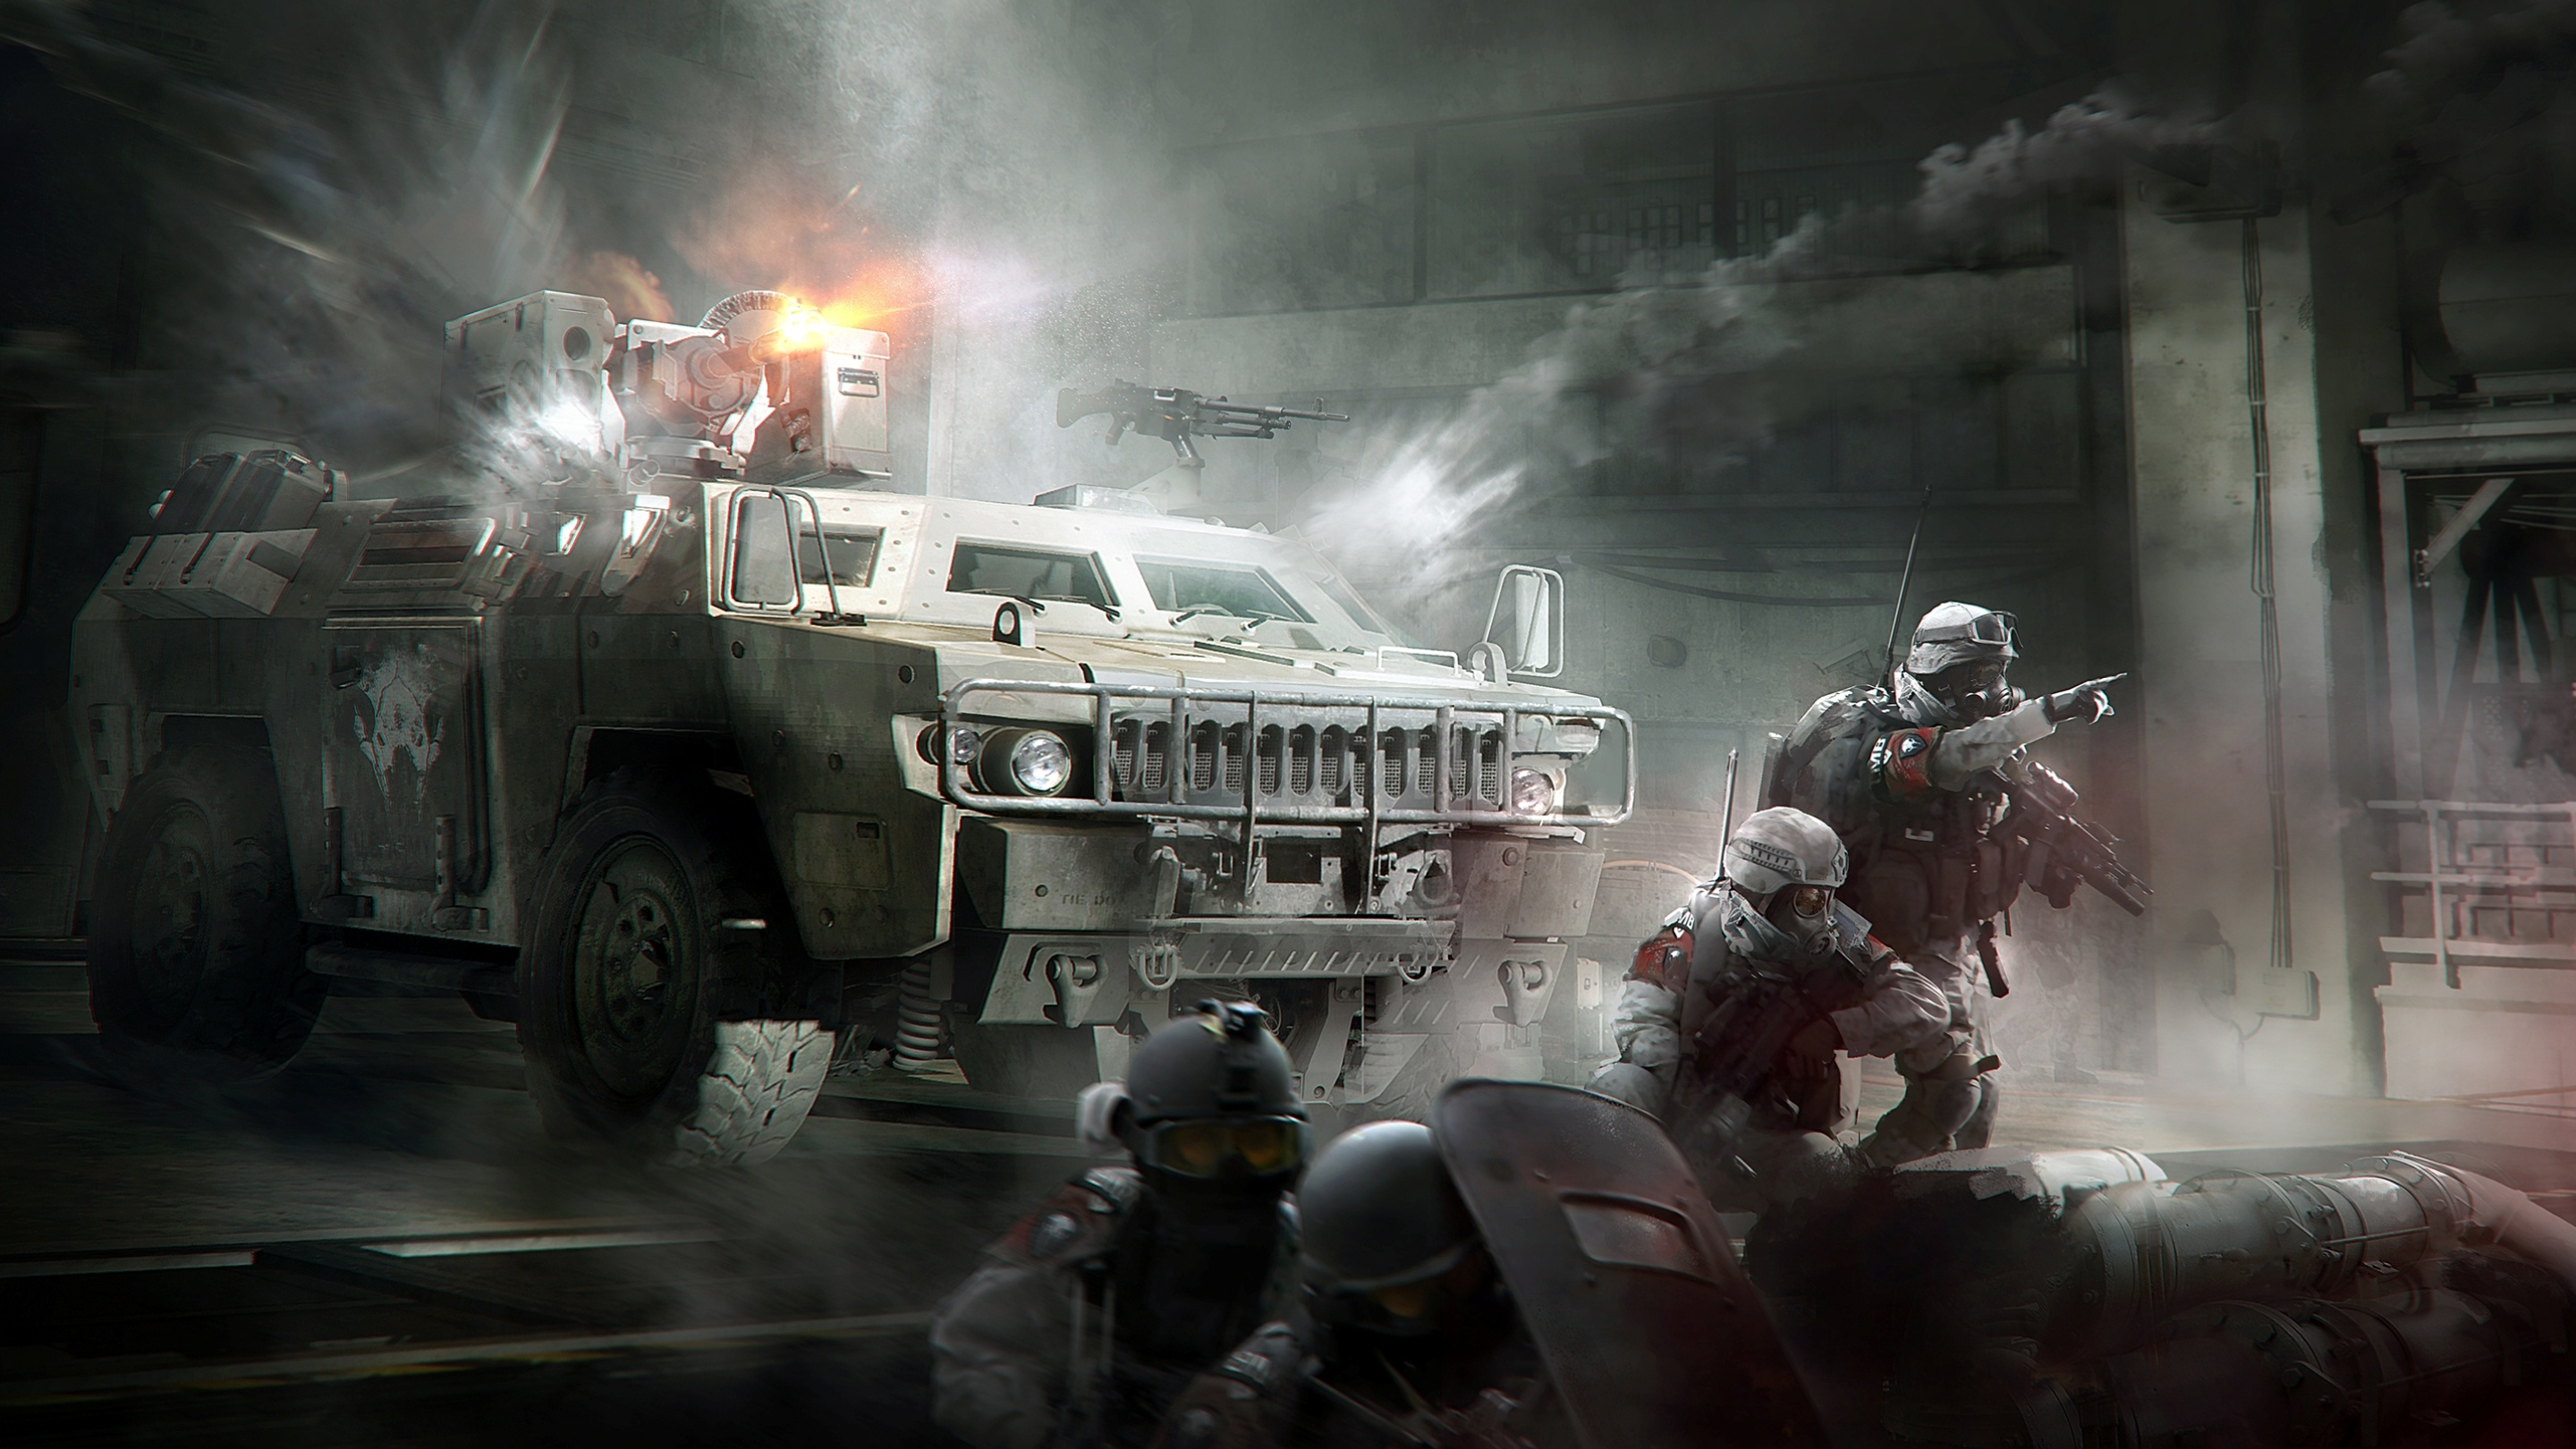 Tom Clancy S The Division Incursions Tank Boss Concept Art